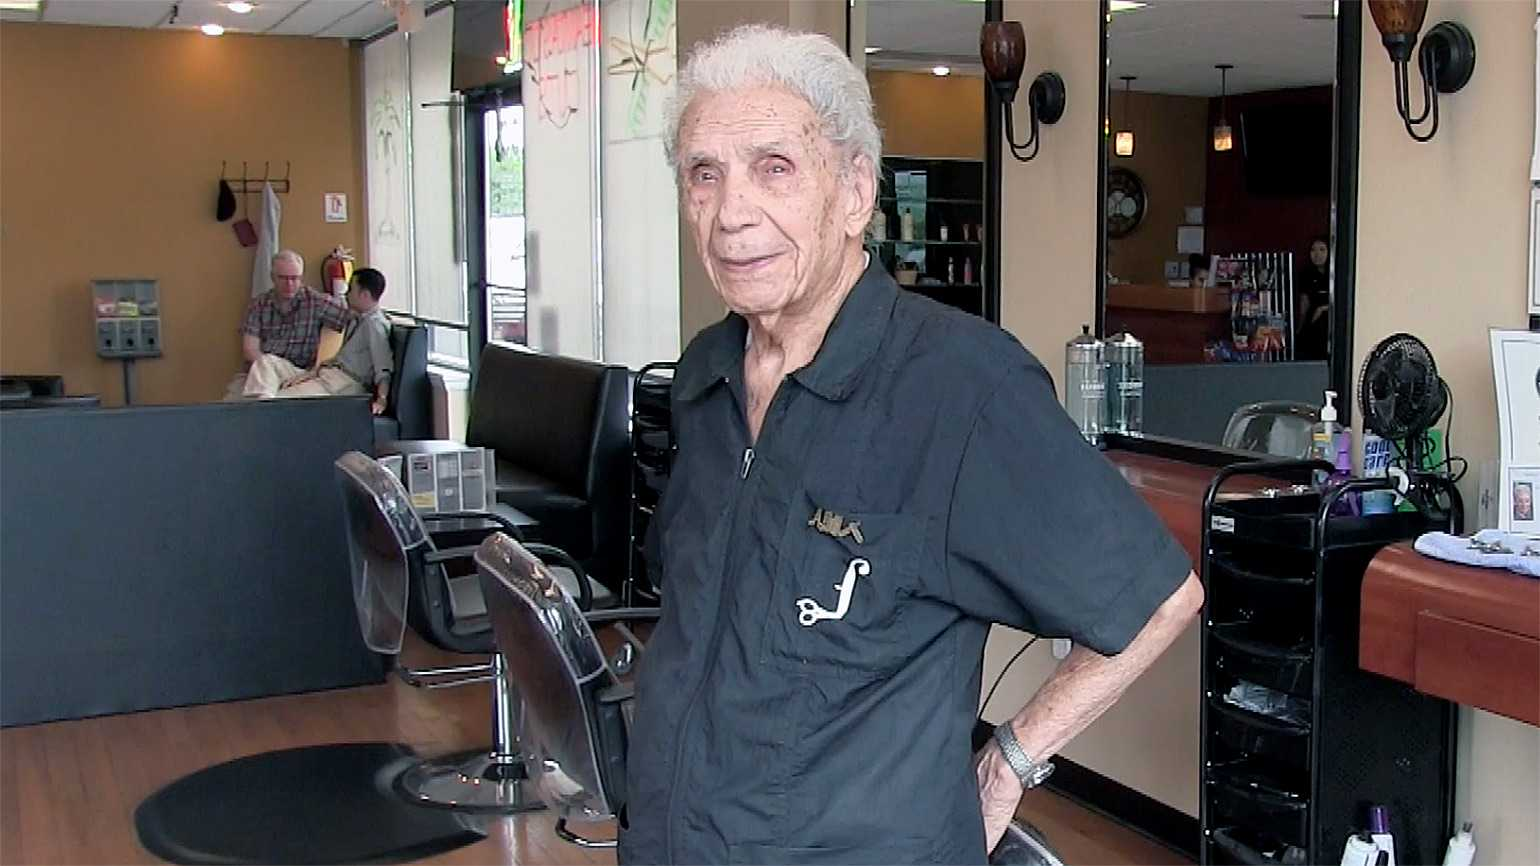 Anthony Mancinelli, the world's oldest barber